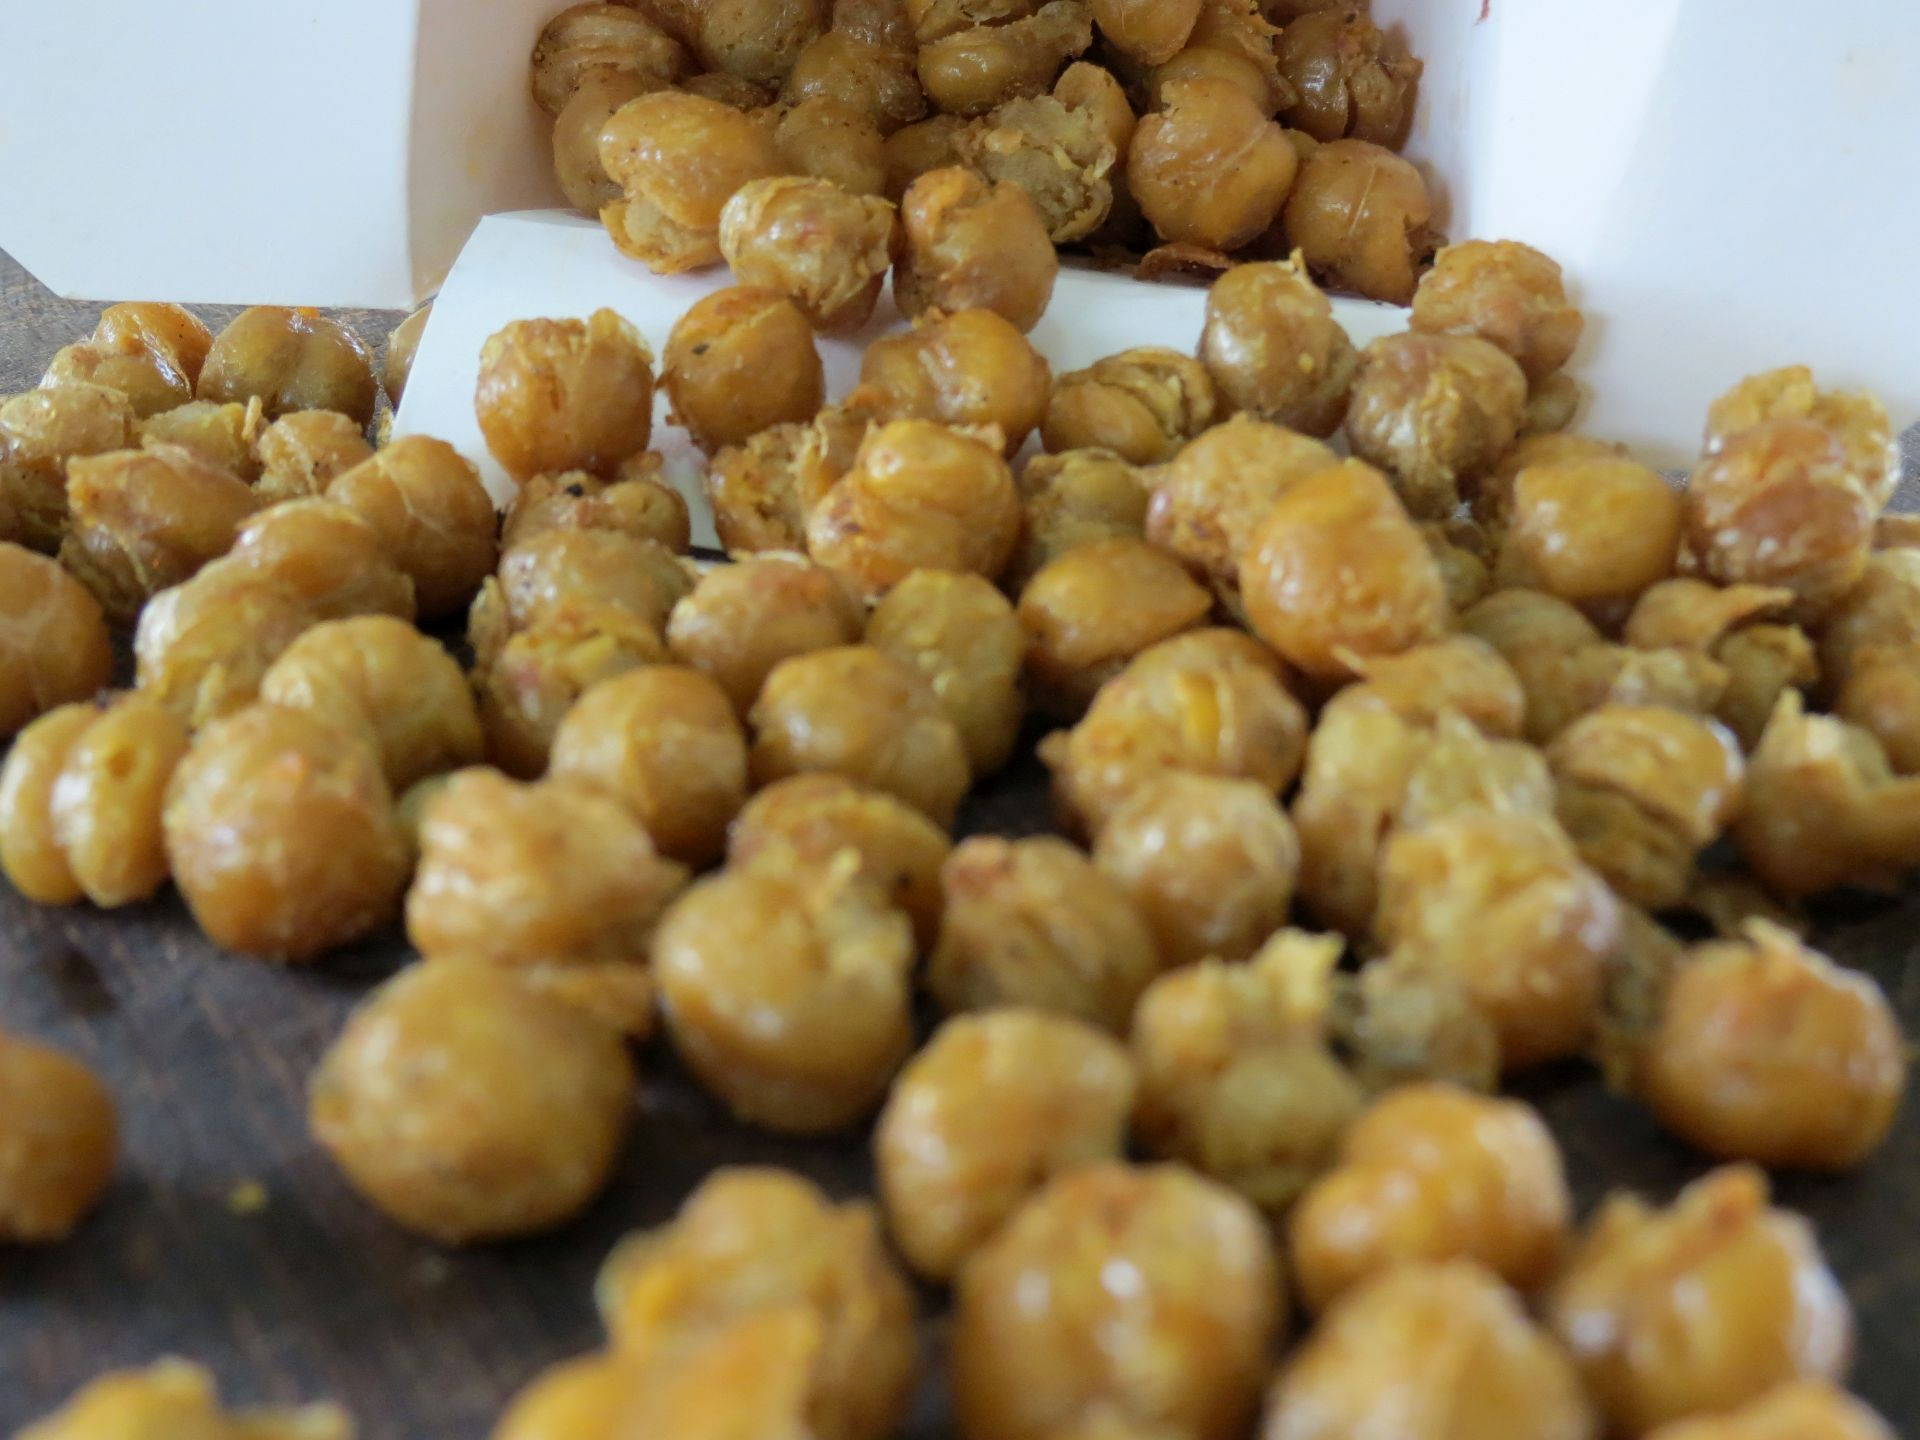 Fried Chickpeas - The Frugal Chef